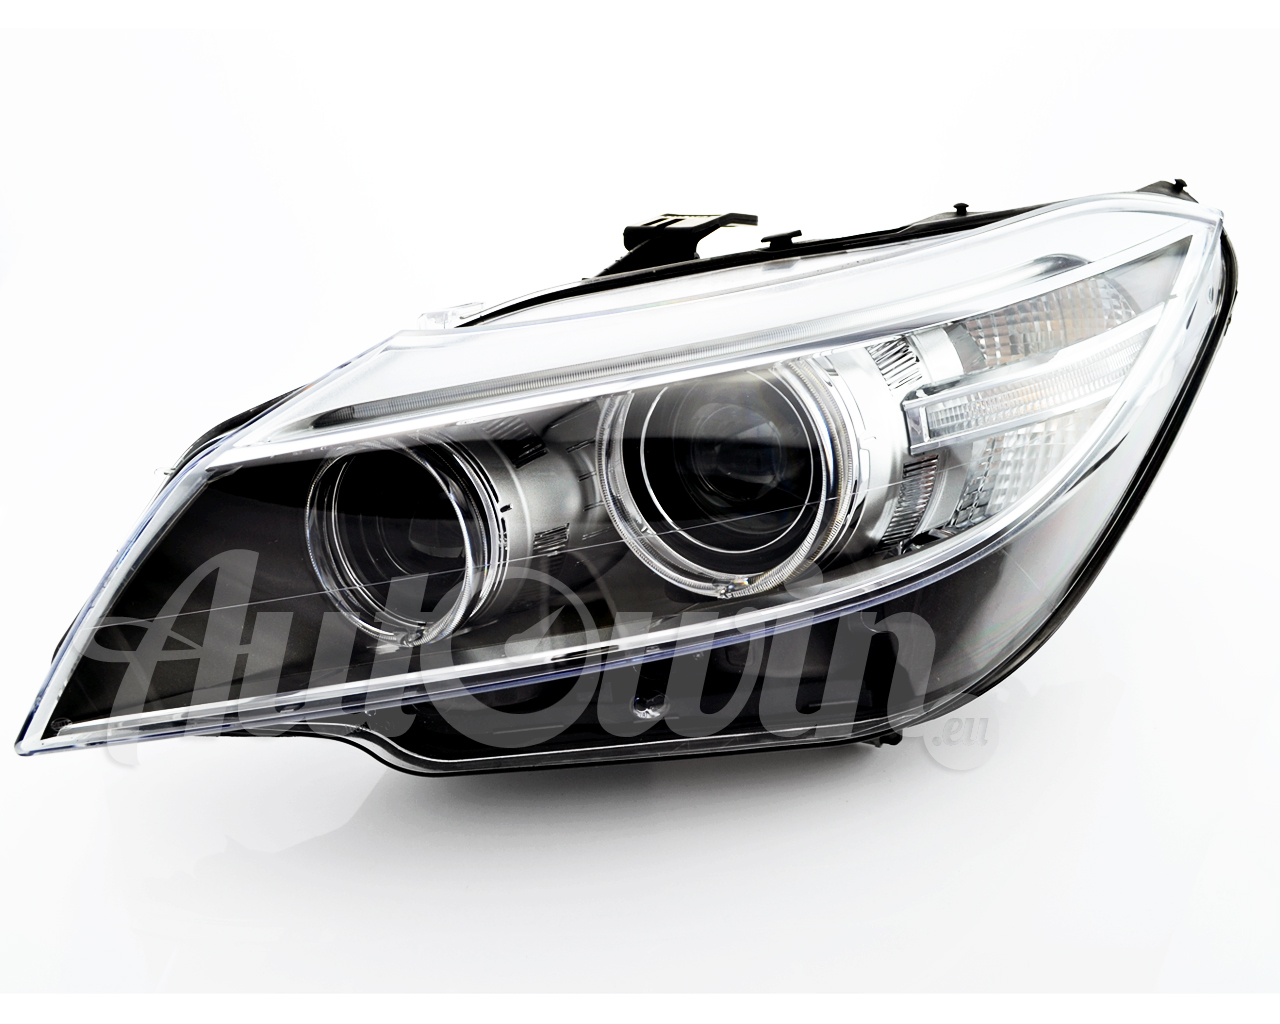 Bmw Z4 Series E89 Lci 2013 2014 Headlight Bi Xenon Left